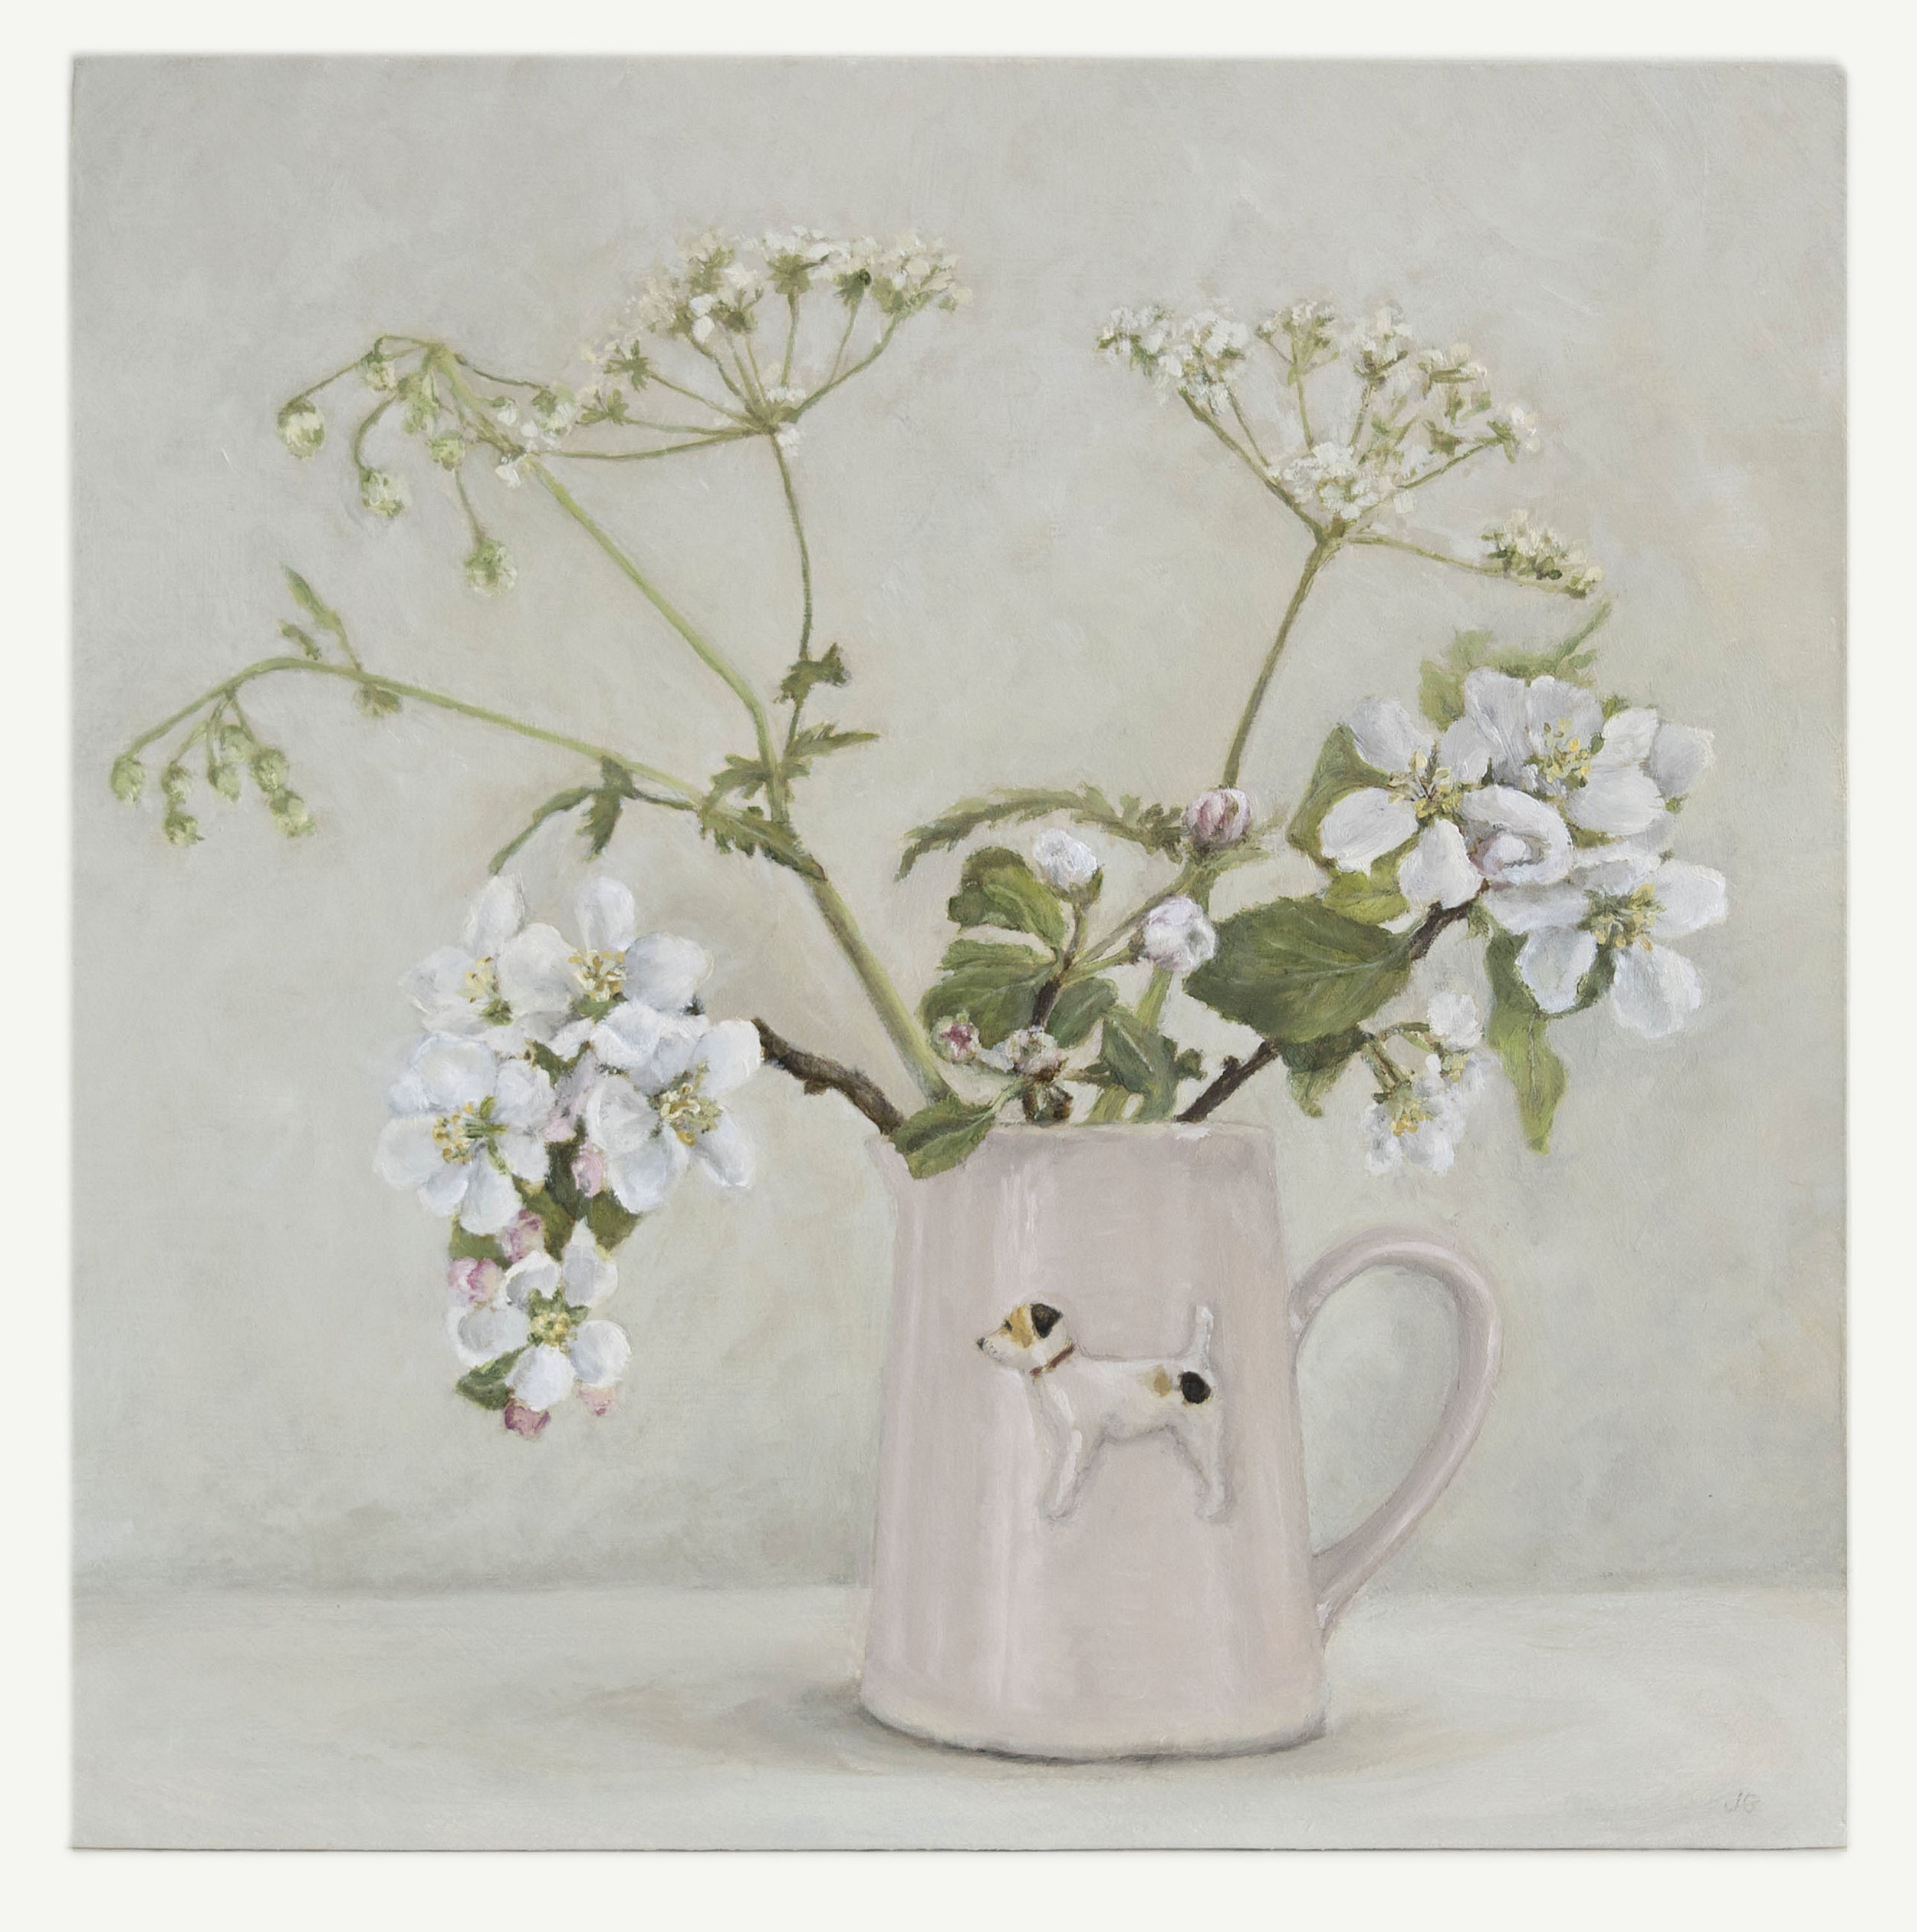 Original Jack Russell and Wild Blossom painting – still available